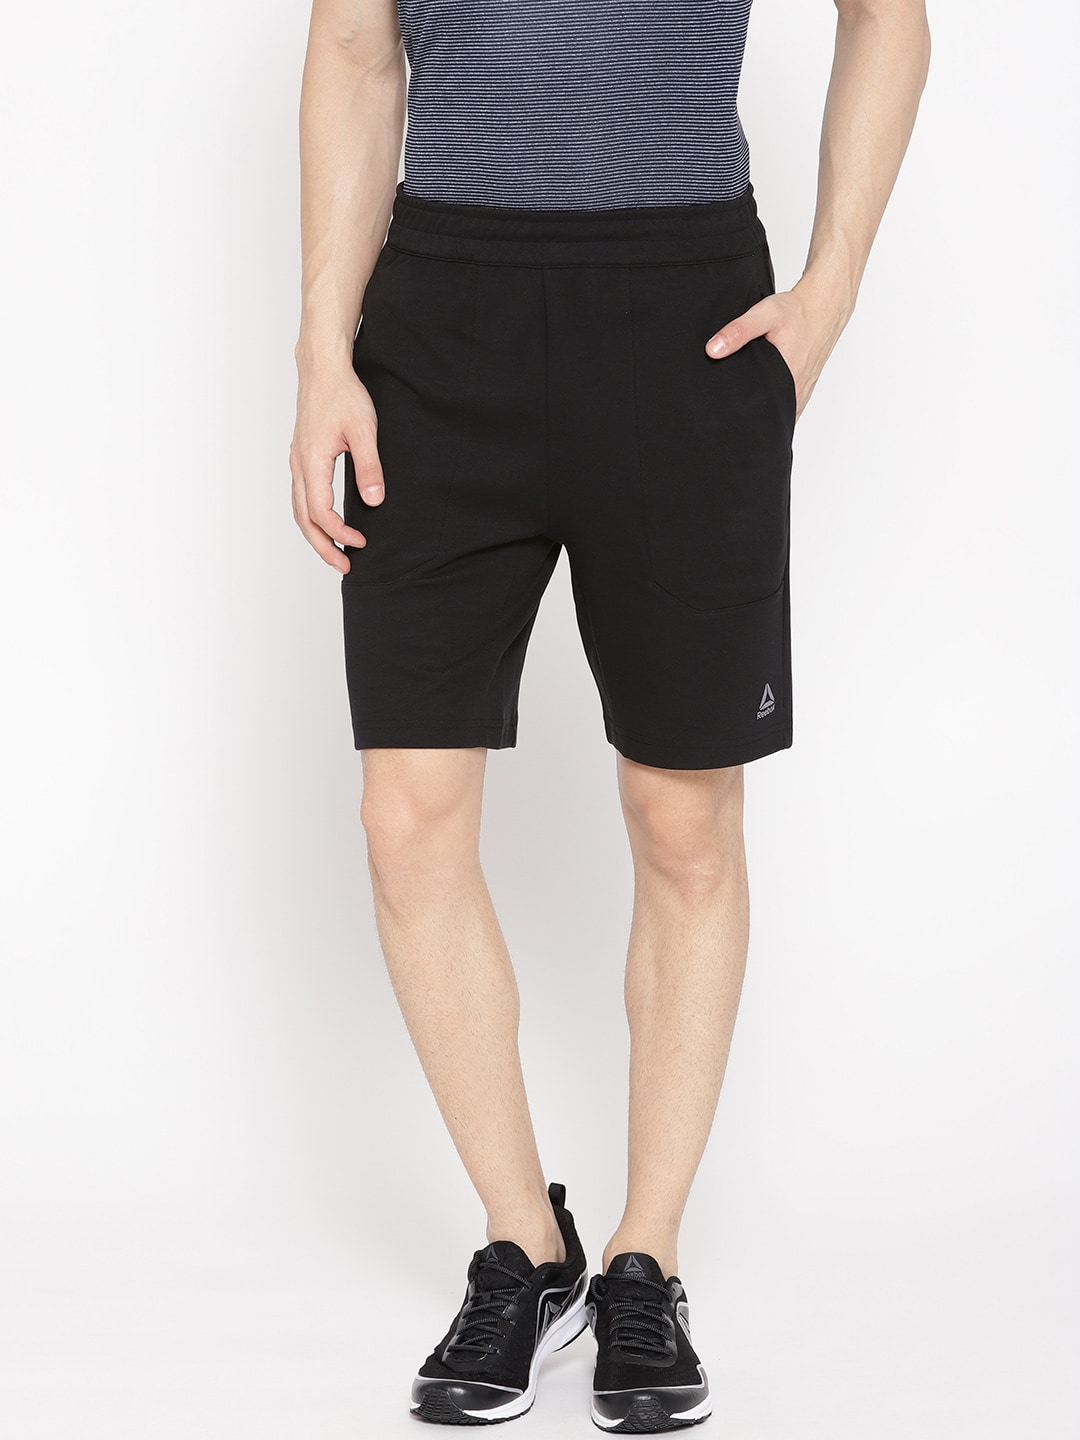 a23682dc1c Reebok Men Black Solid WOR Melange Doubleknit Training Shorts